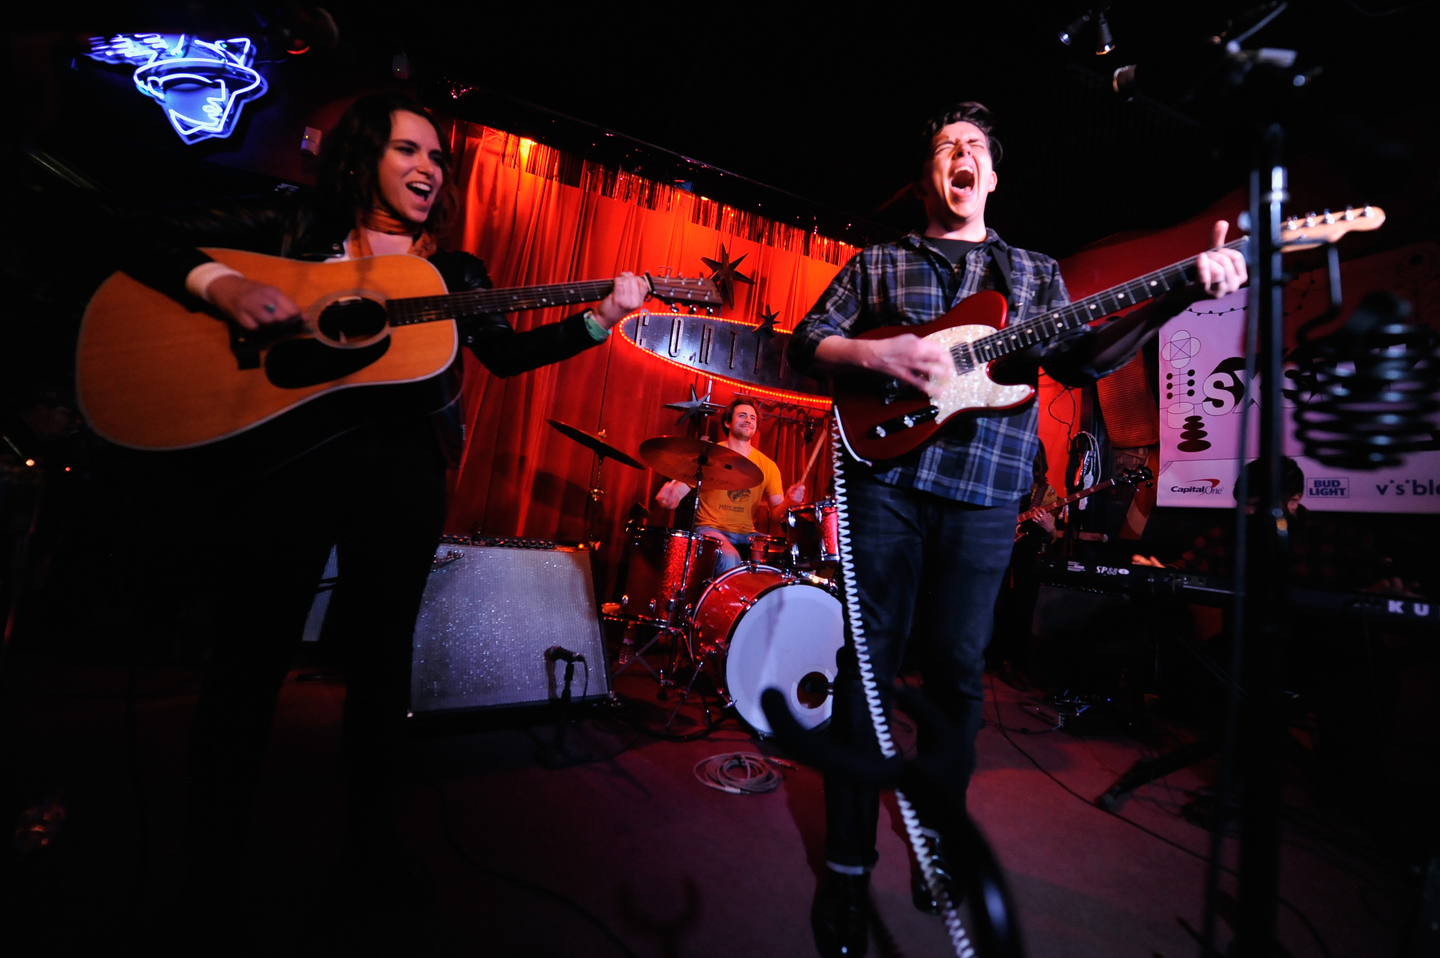 Jason Hawk Harris at Continental Club, presented by Bloodshot Records – Photo by Nicola Gell/Getty Images for SXSW